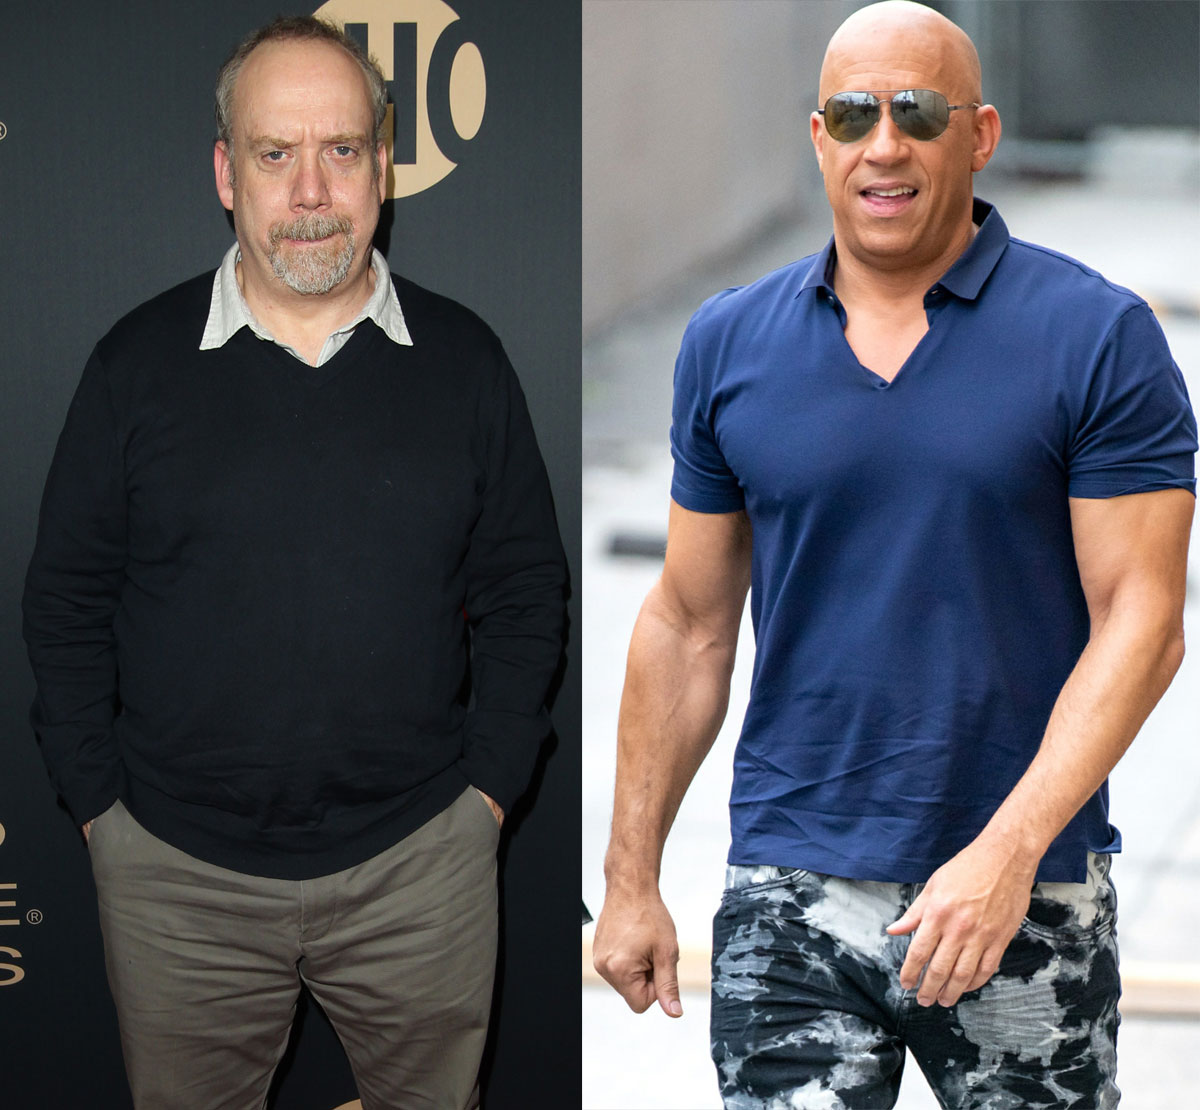 Paul Giamatti and Vin Diesel are the same age!